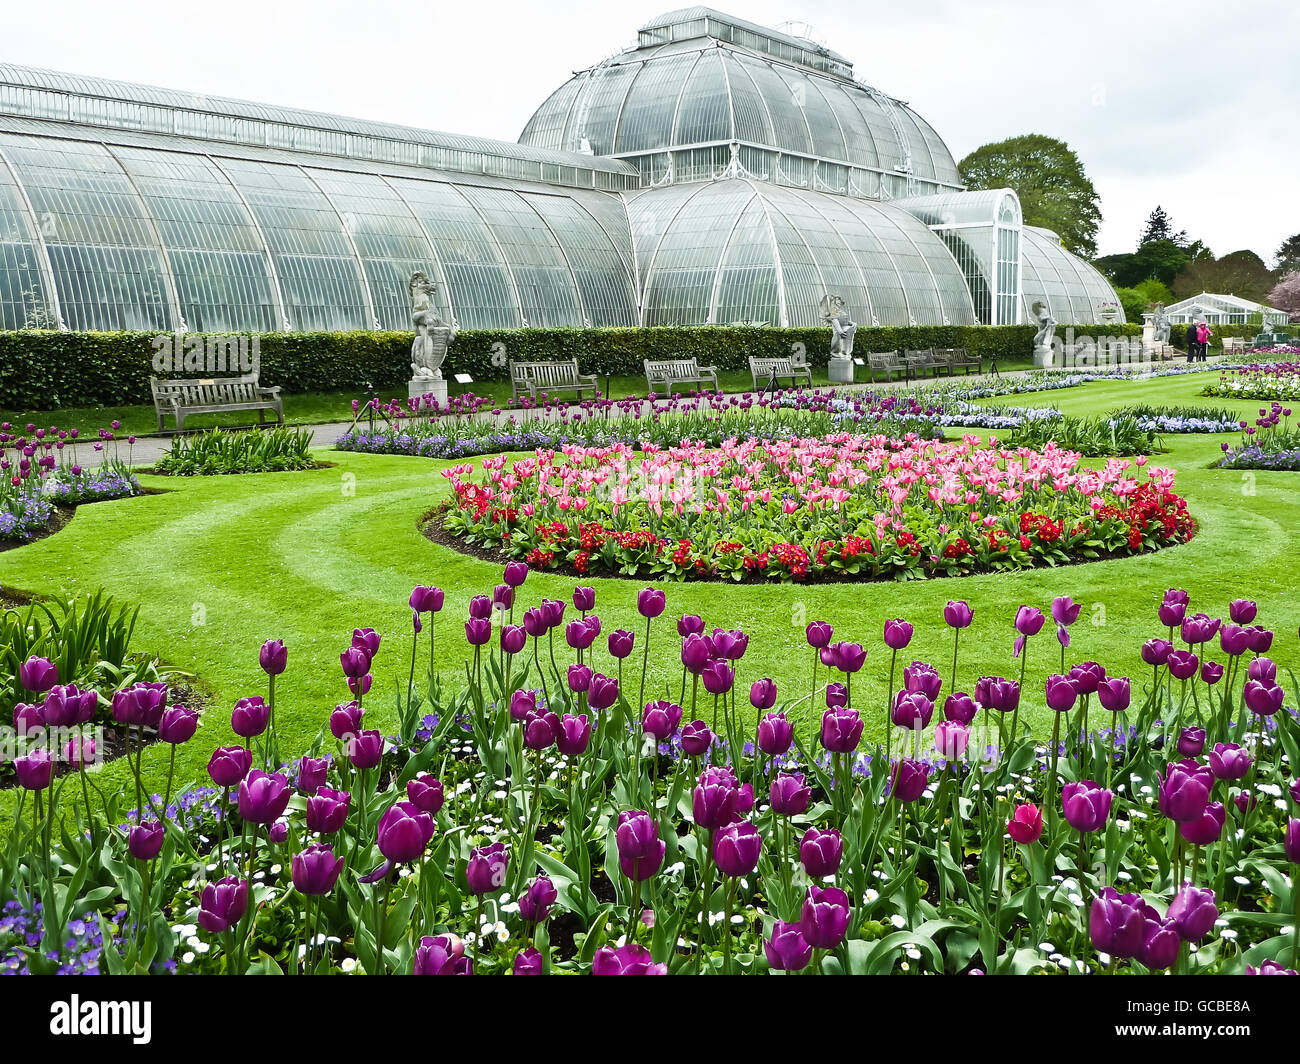 tulip planted flower beds in front of the palm house, kew gardens